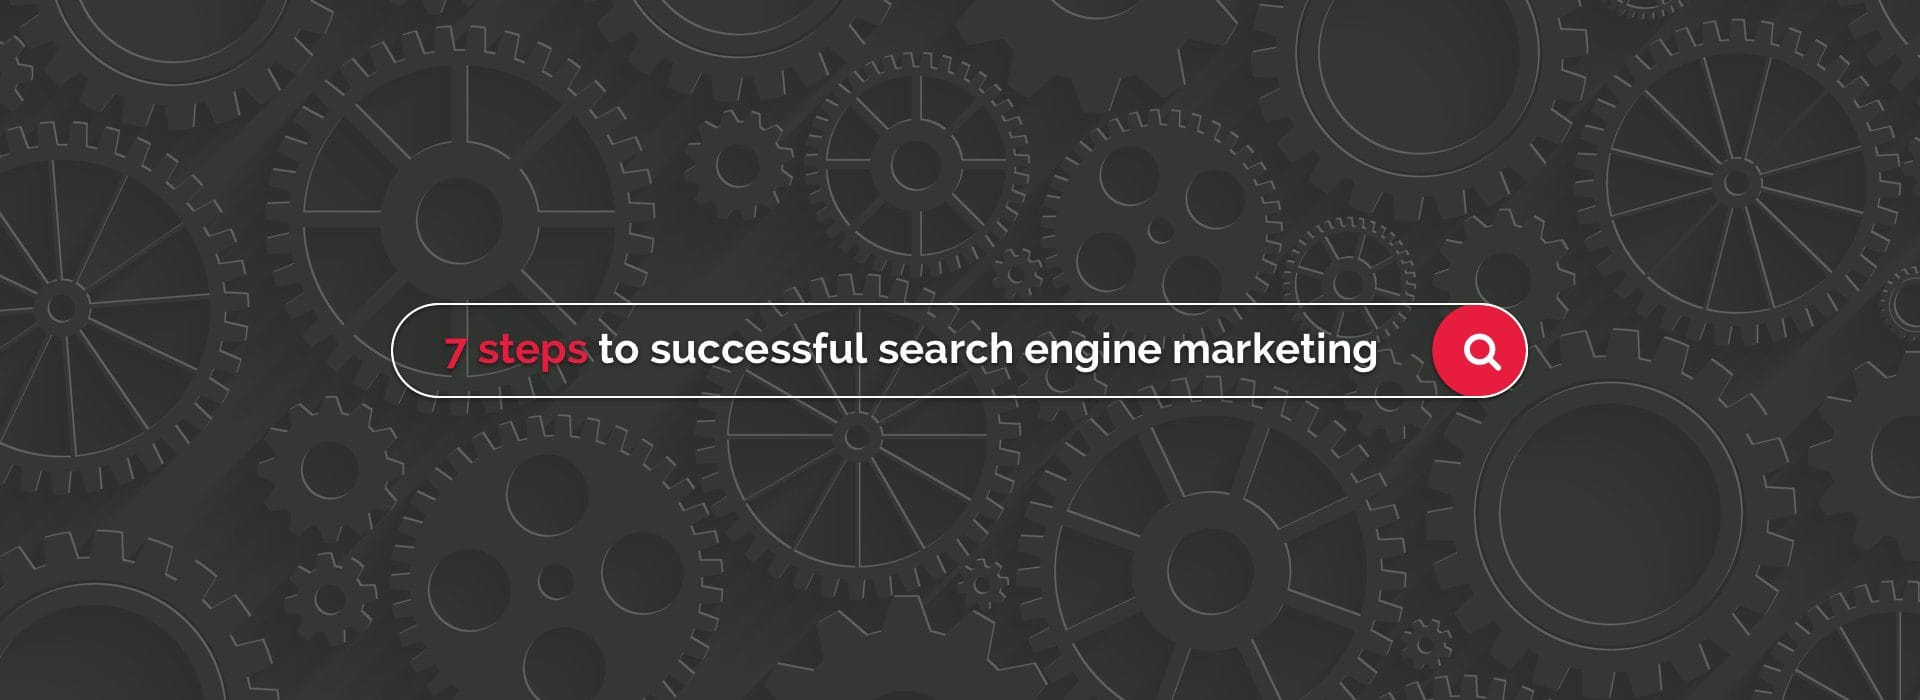 Successful search engine marketing